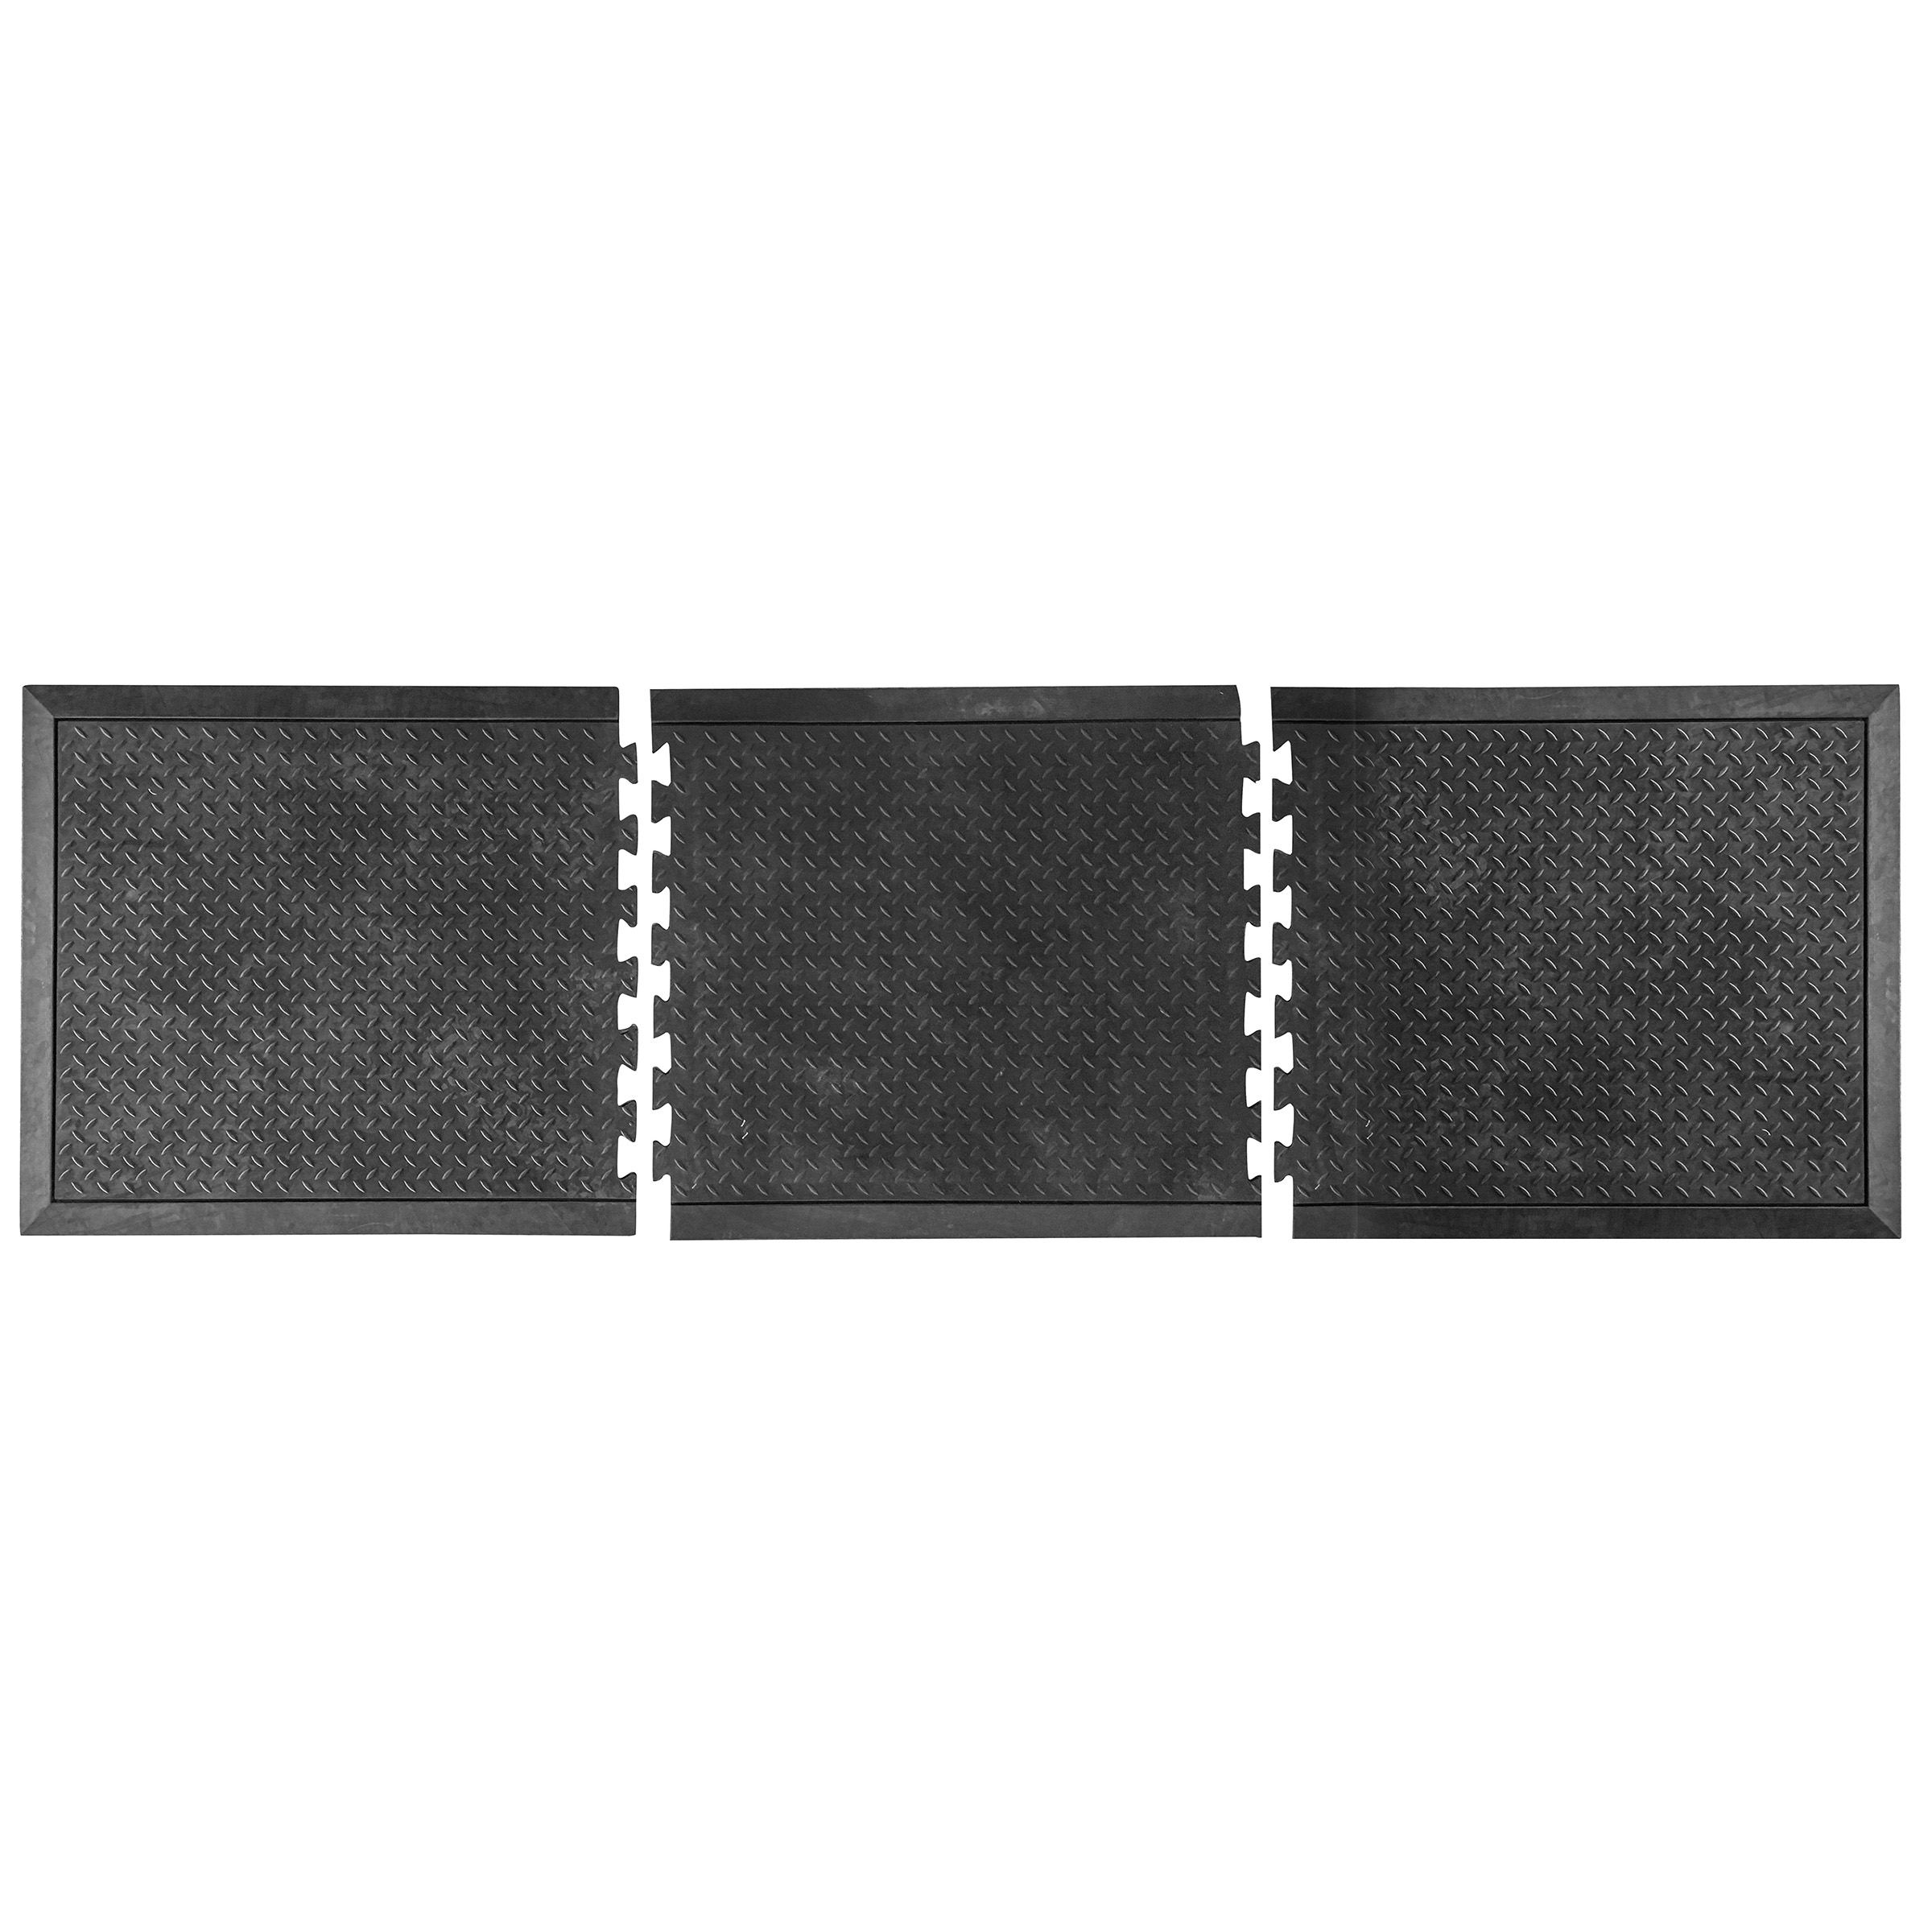 Anti Fatique Rubber Mat - 3 Piece Set